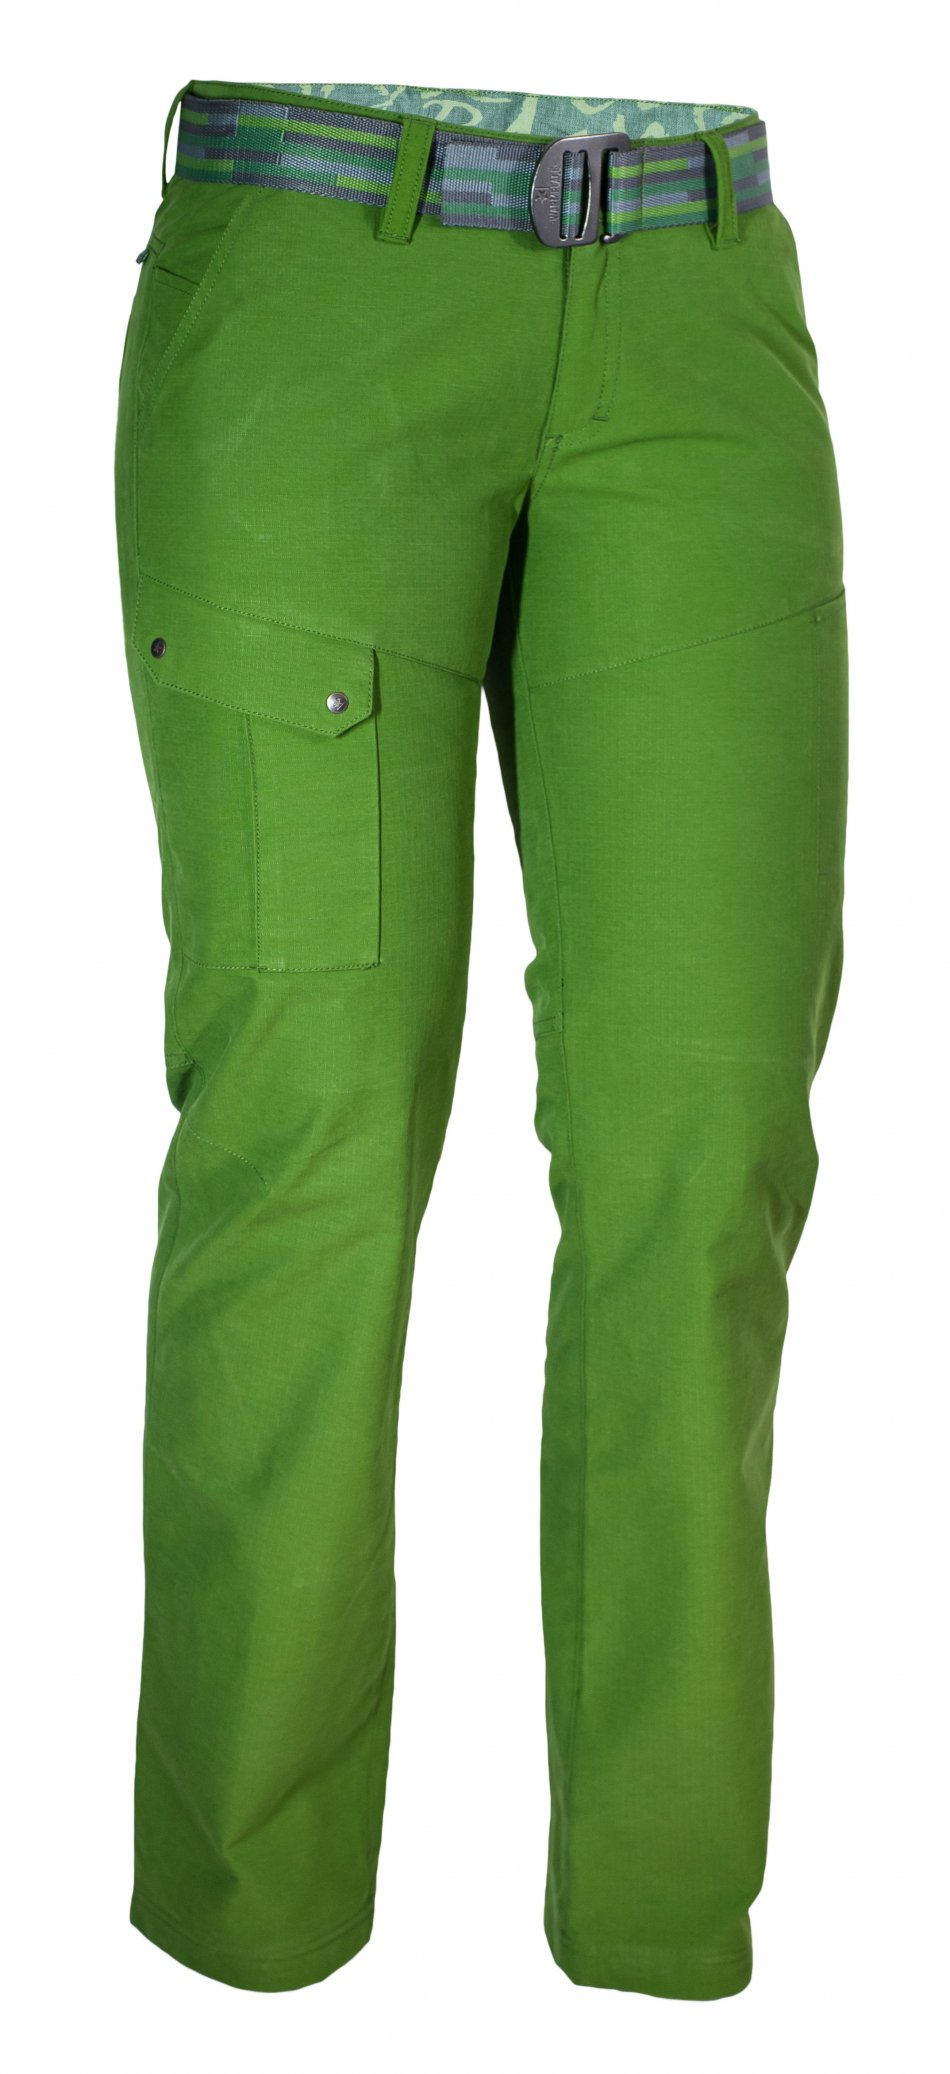 4302 Elkie pants green